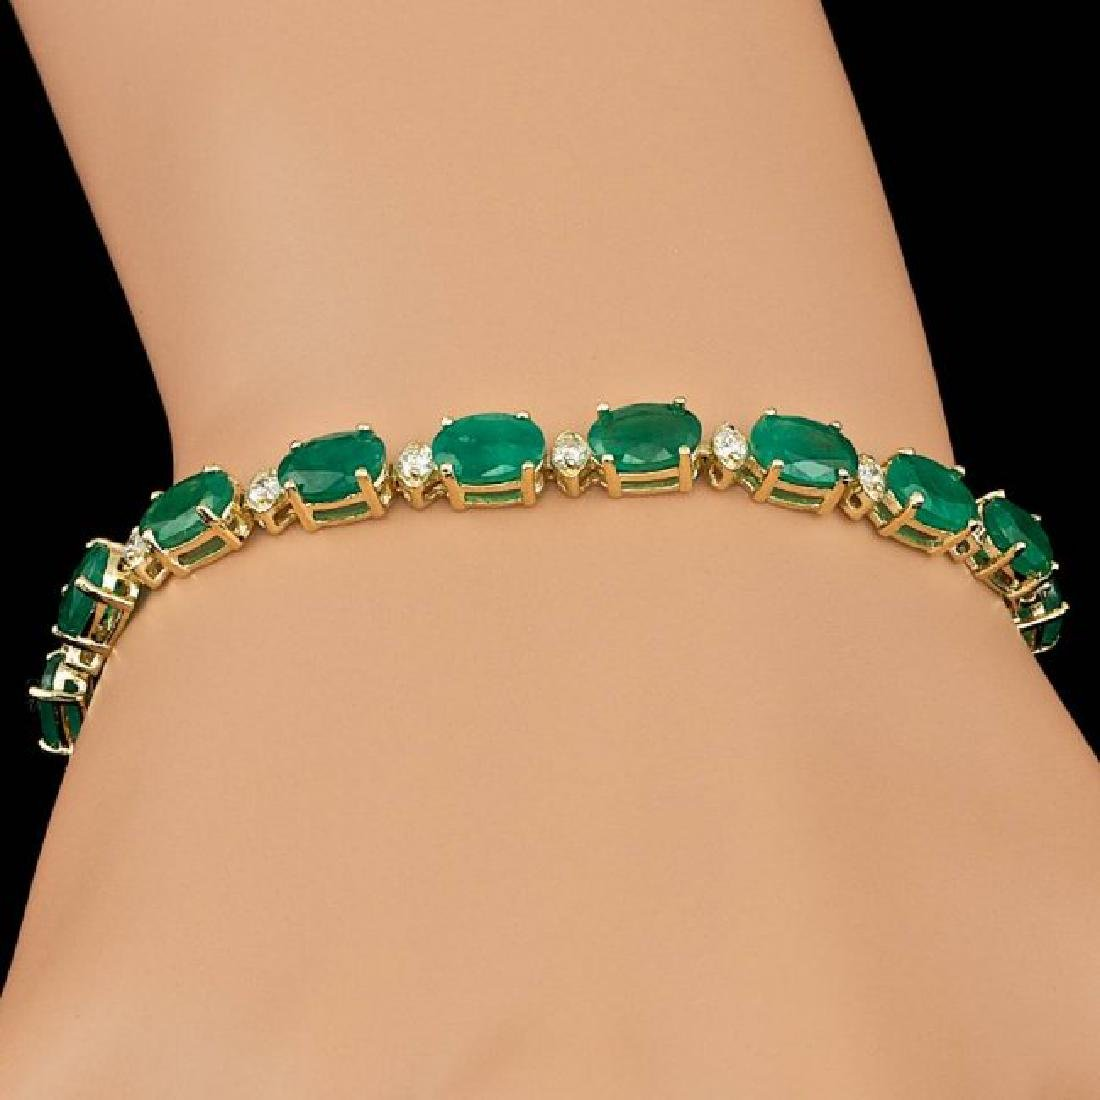 14k Gold 14.00ct Emerald 1.00ct Diamond Bracelet - 8